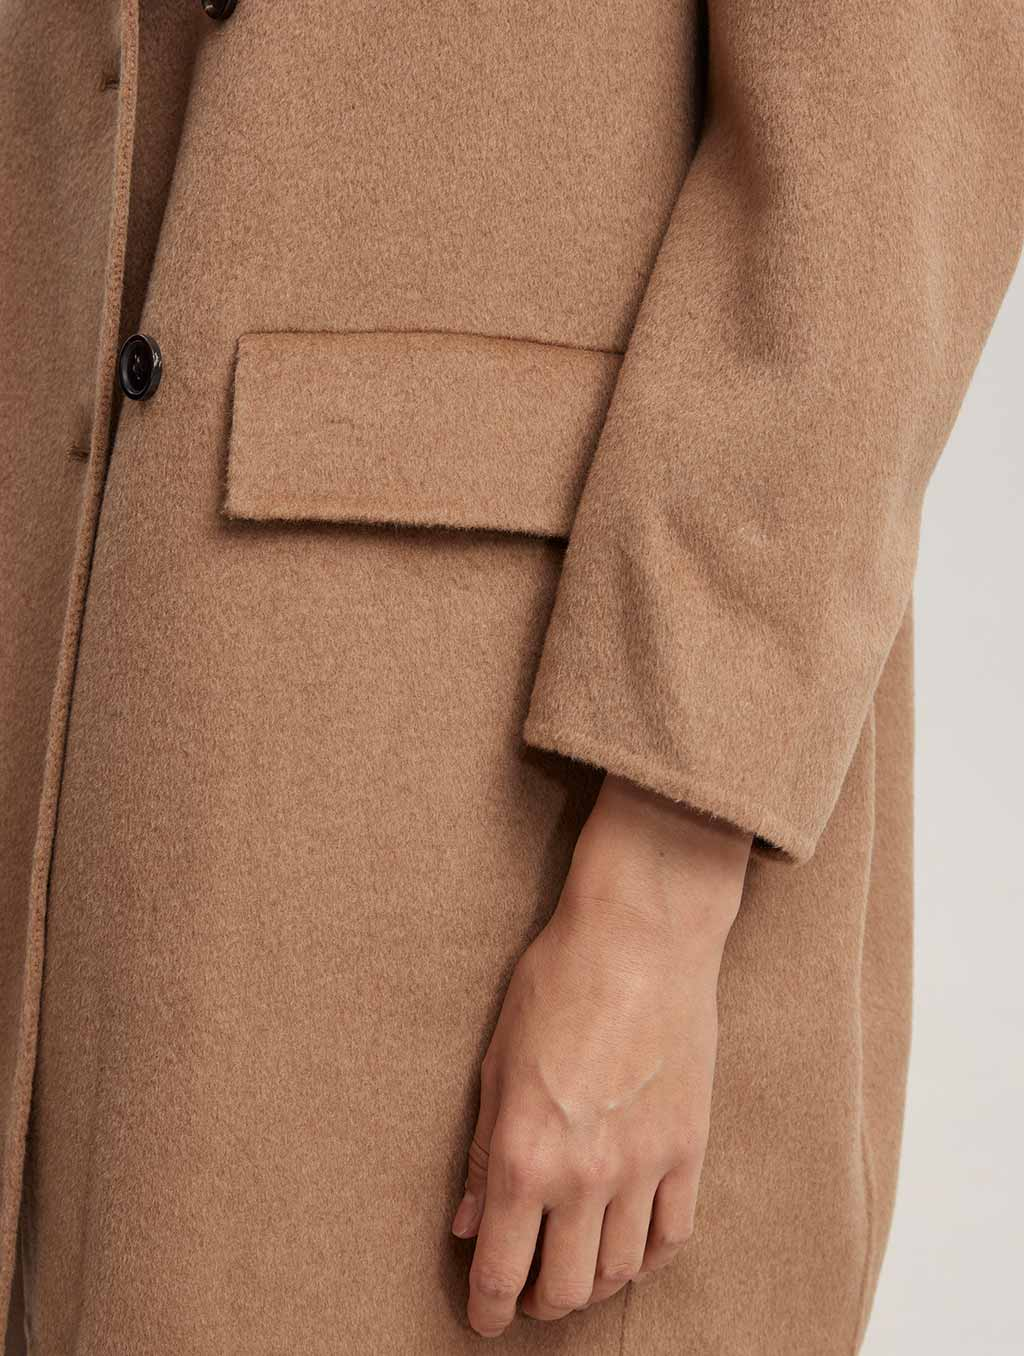 Waisted Double Buttoned 100% Camel Hair Coat-detail-camel1